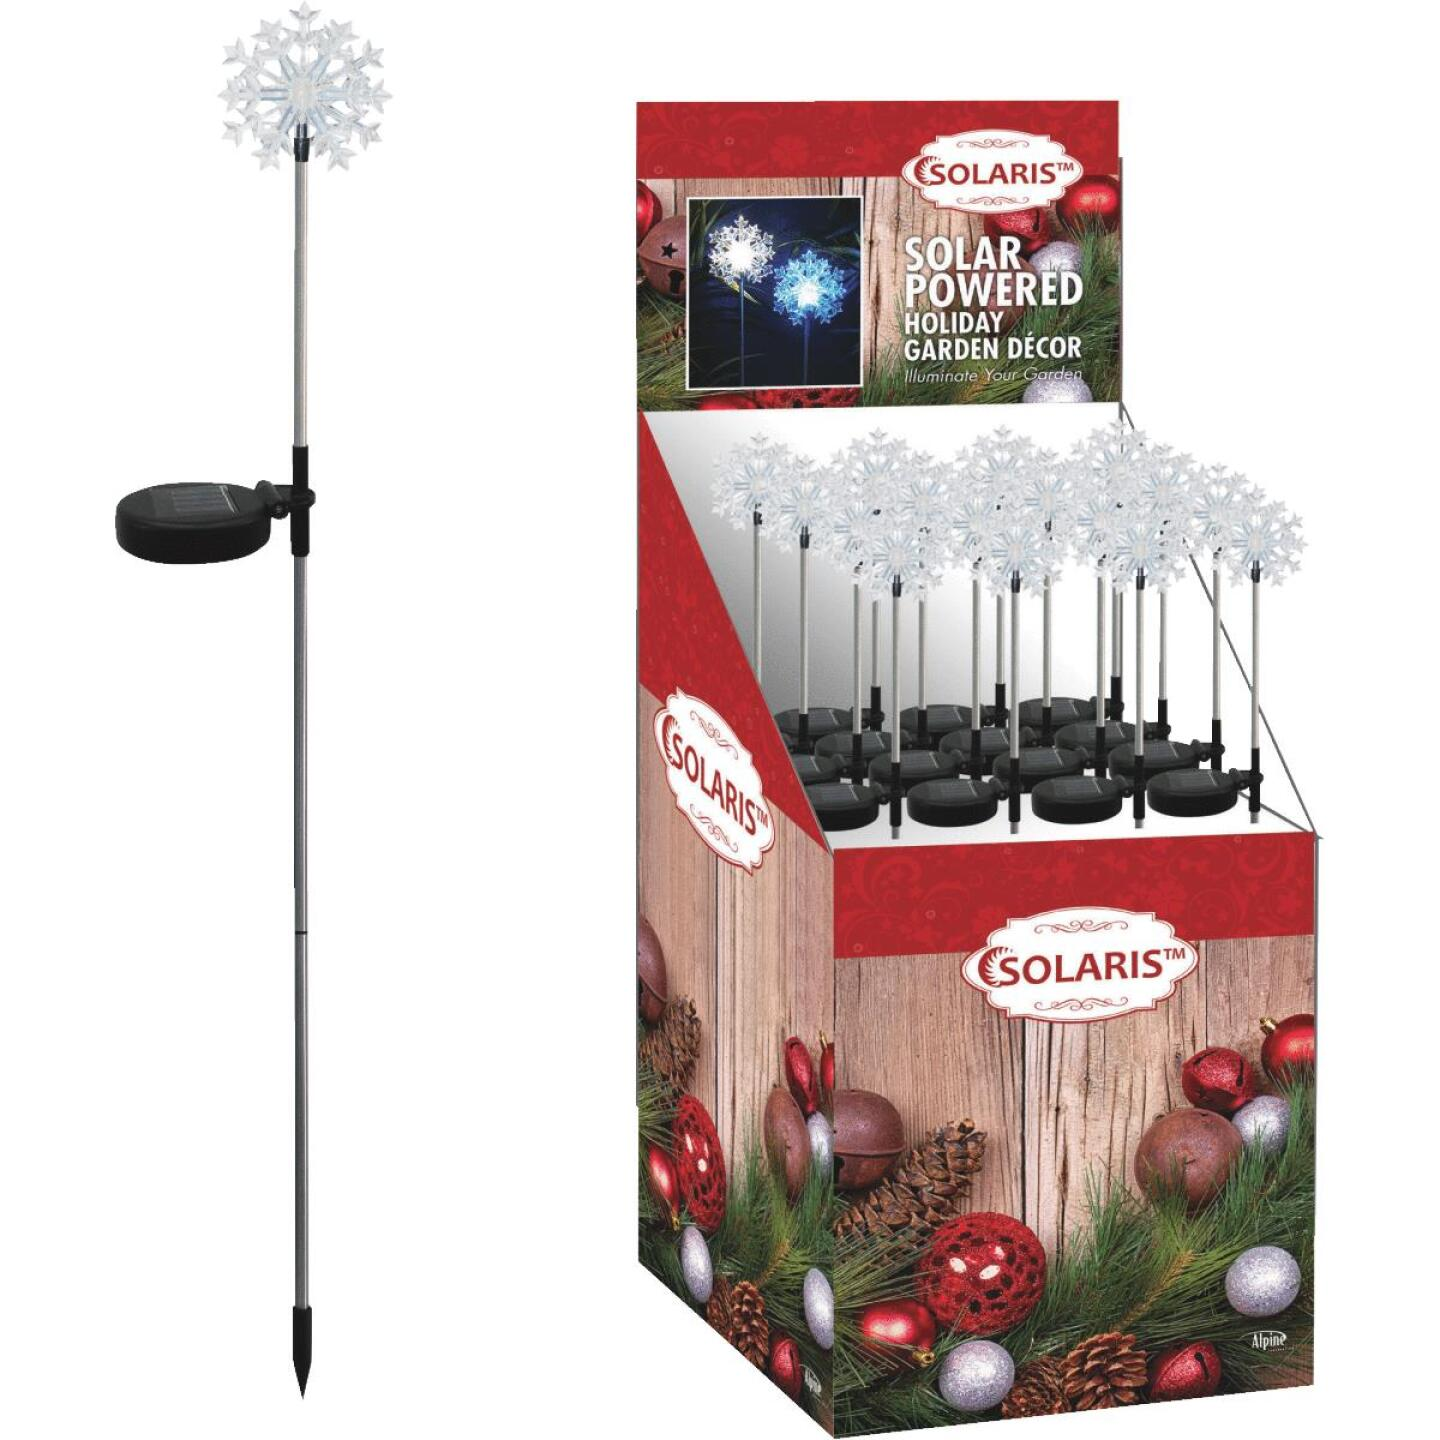 Solaris 33 In. LED Solar Snowflake Holiday Garden Stake Image 1